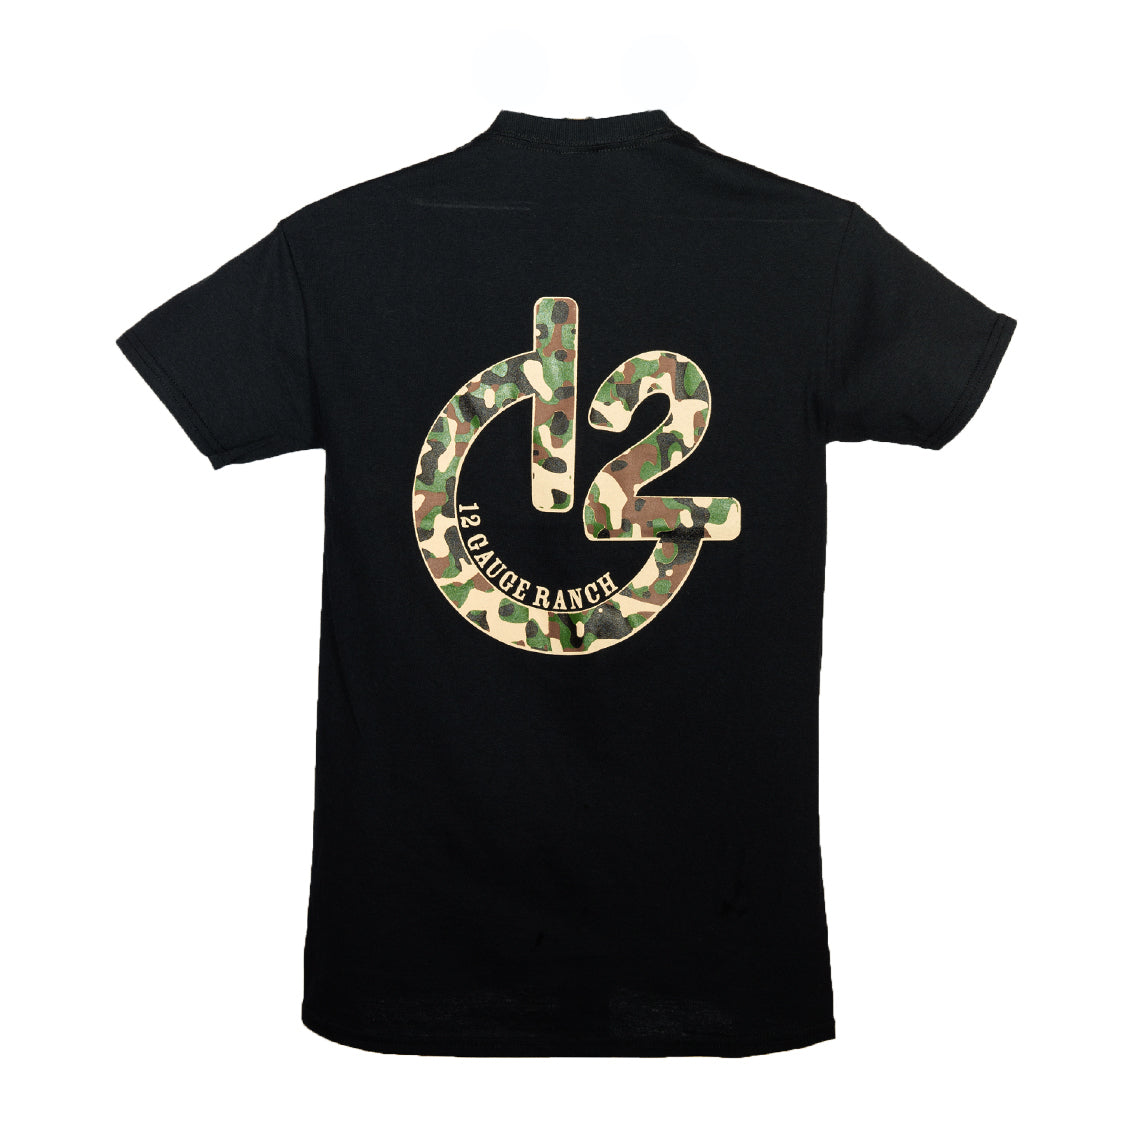 12 Gauge Ranch Black with Camo Short Sleeve T-Shirt, Apparel, 12 Gauge Ranch, 12 Gauge Ranch 12 Gauge Ranch